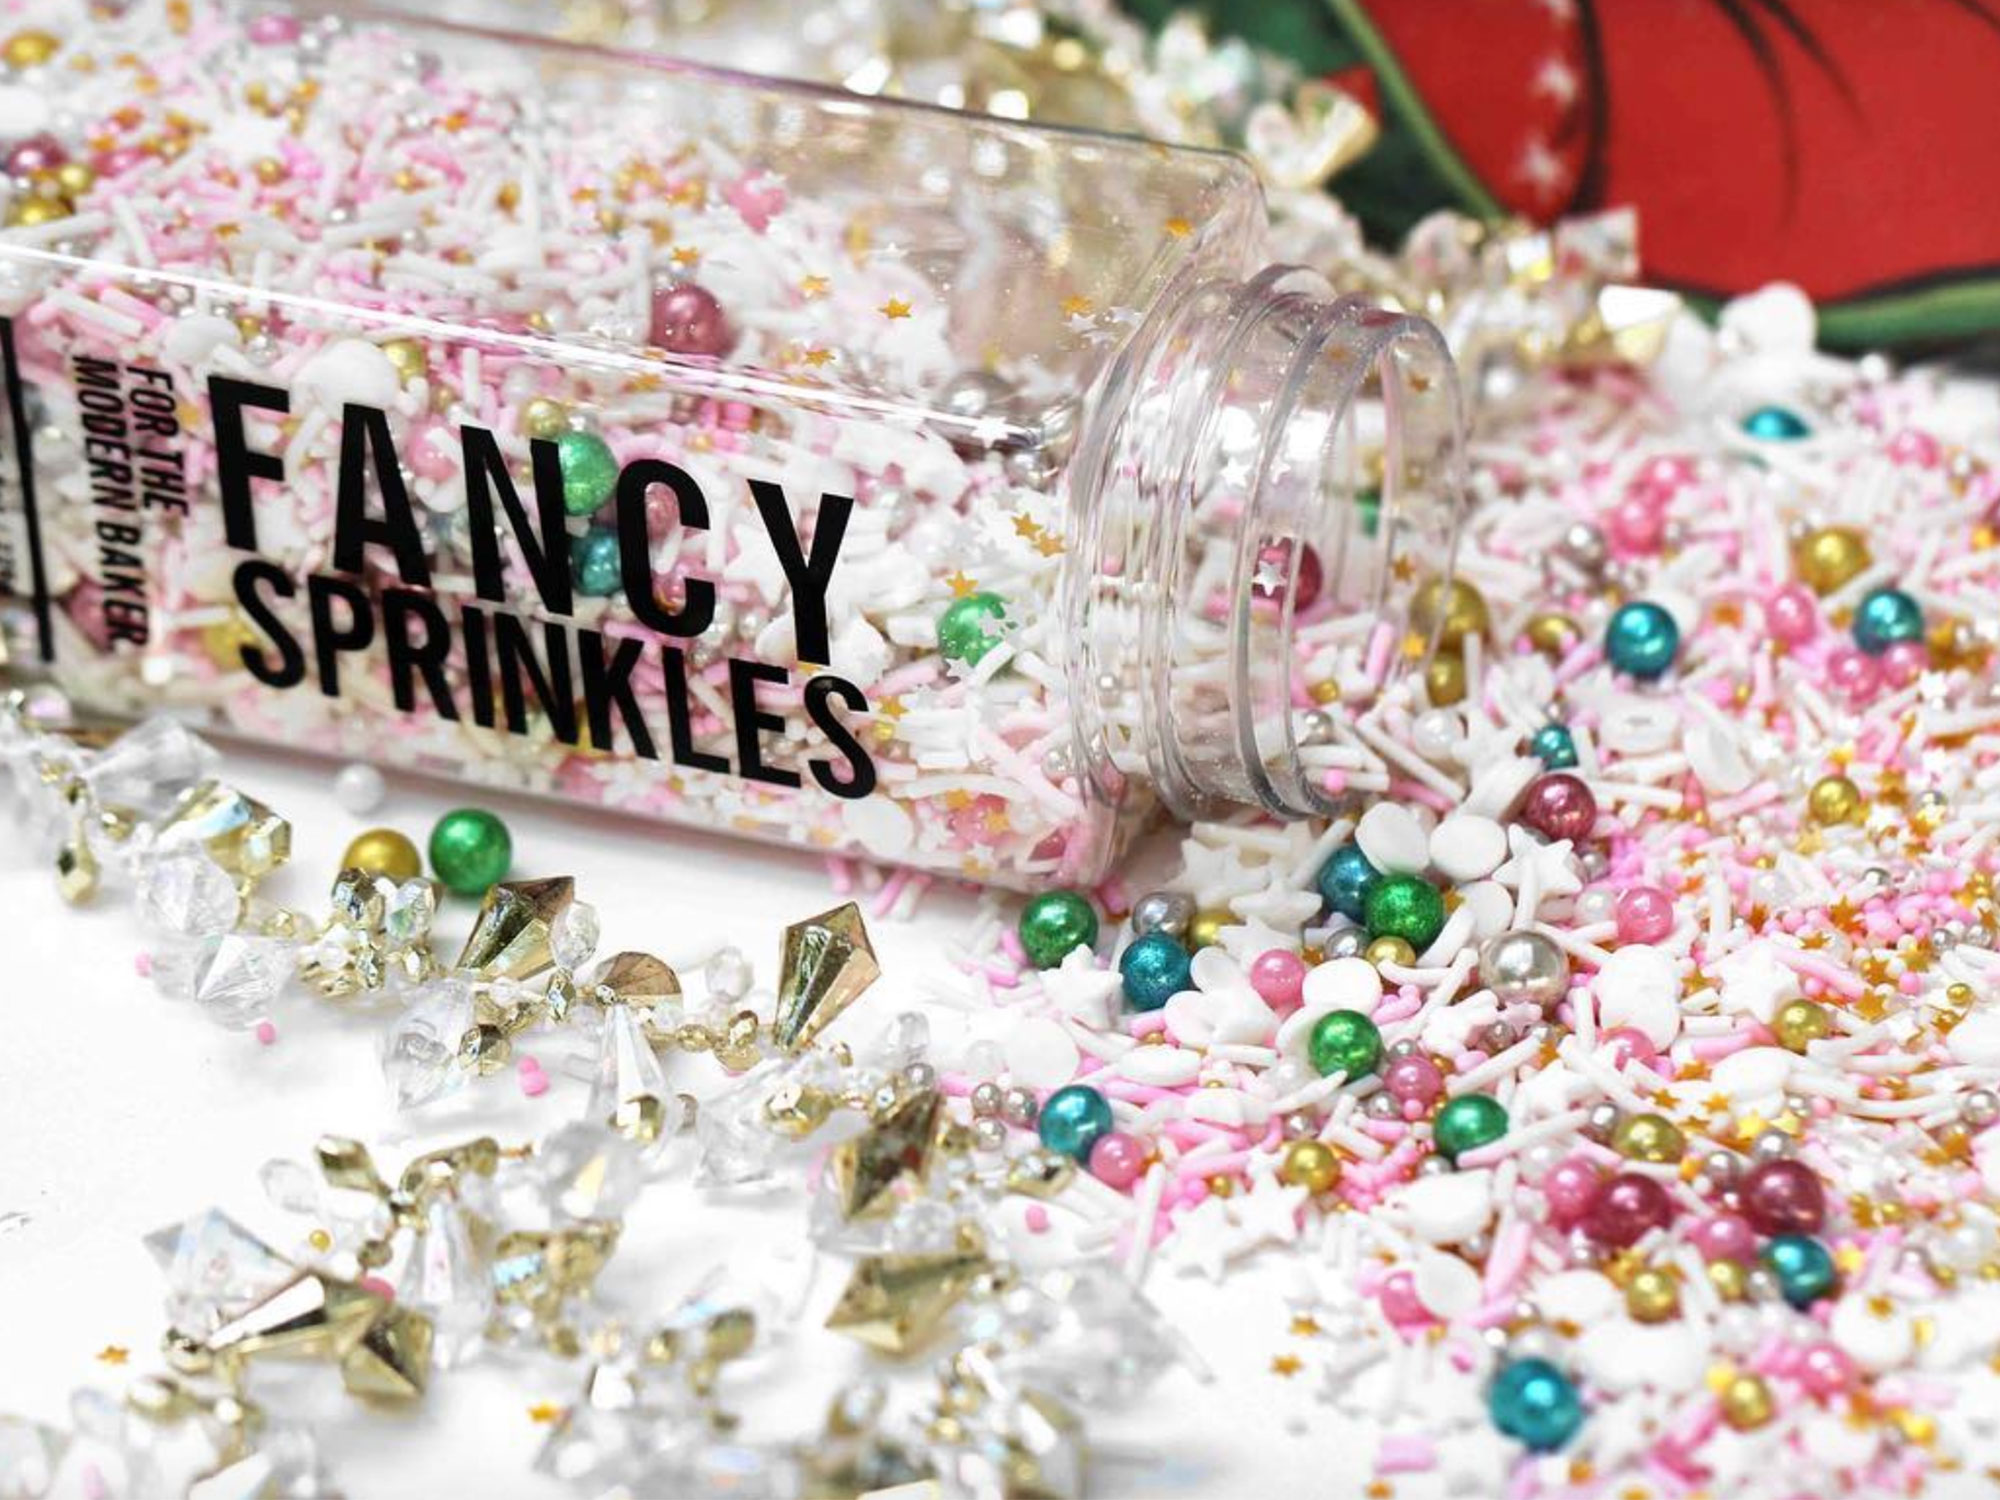 fancy-sprinkles.jpg